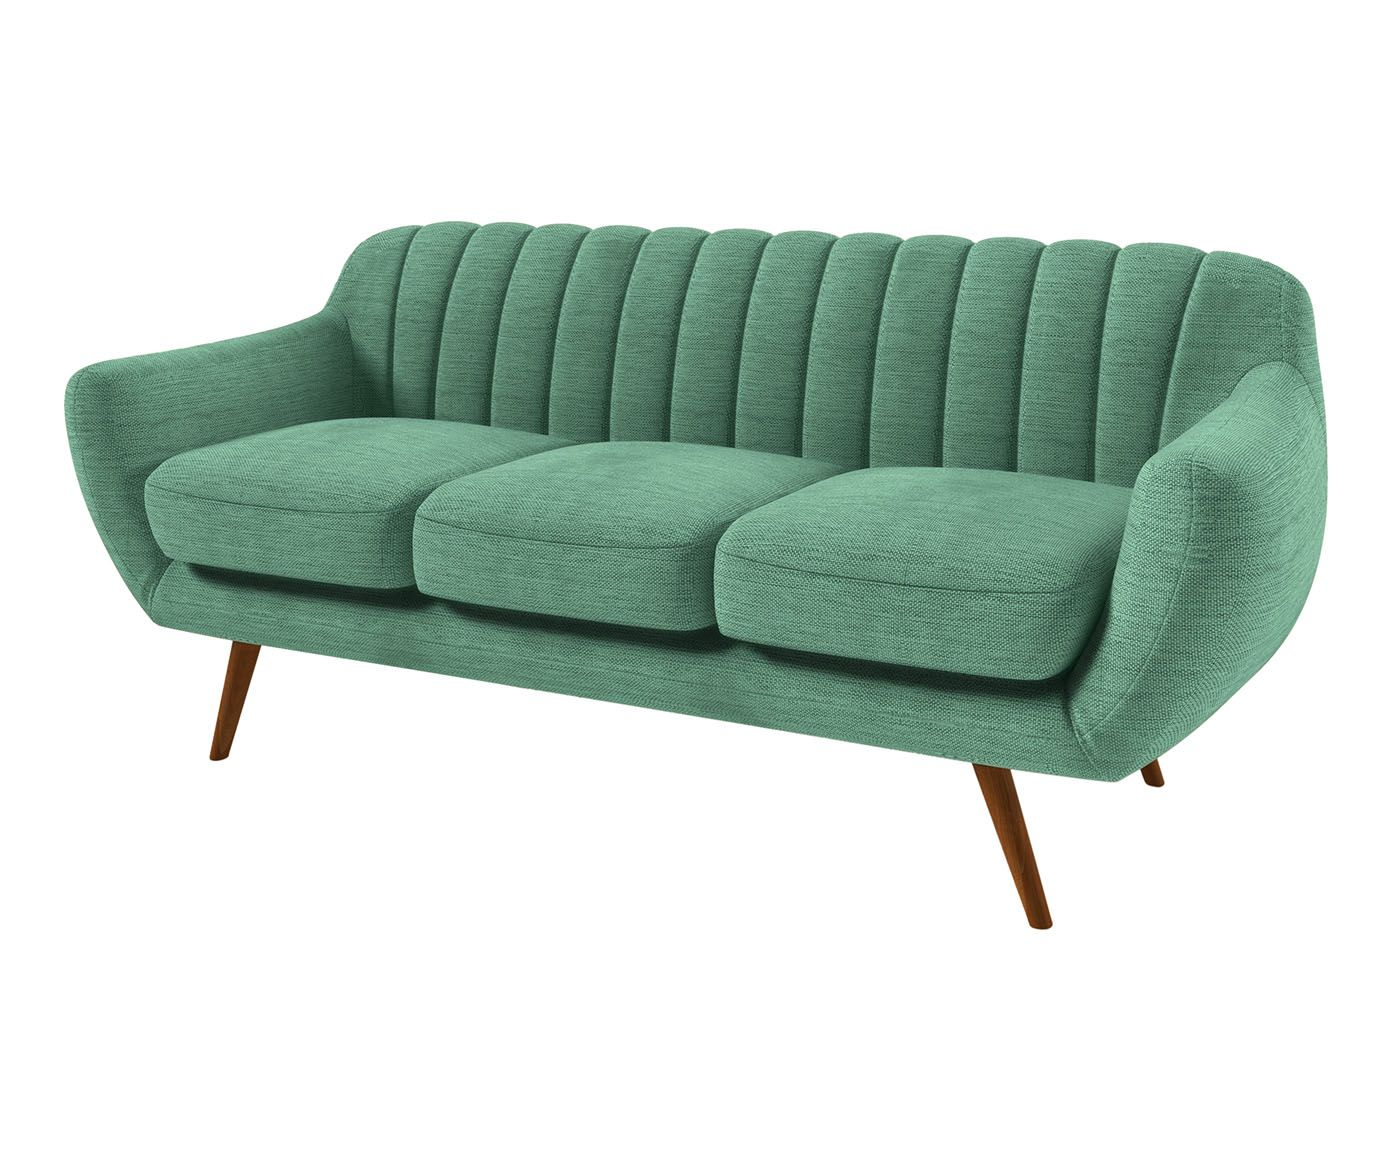 Westwing Home Living Sofa Styling Sofa Vintage Sofa